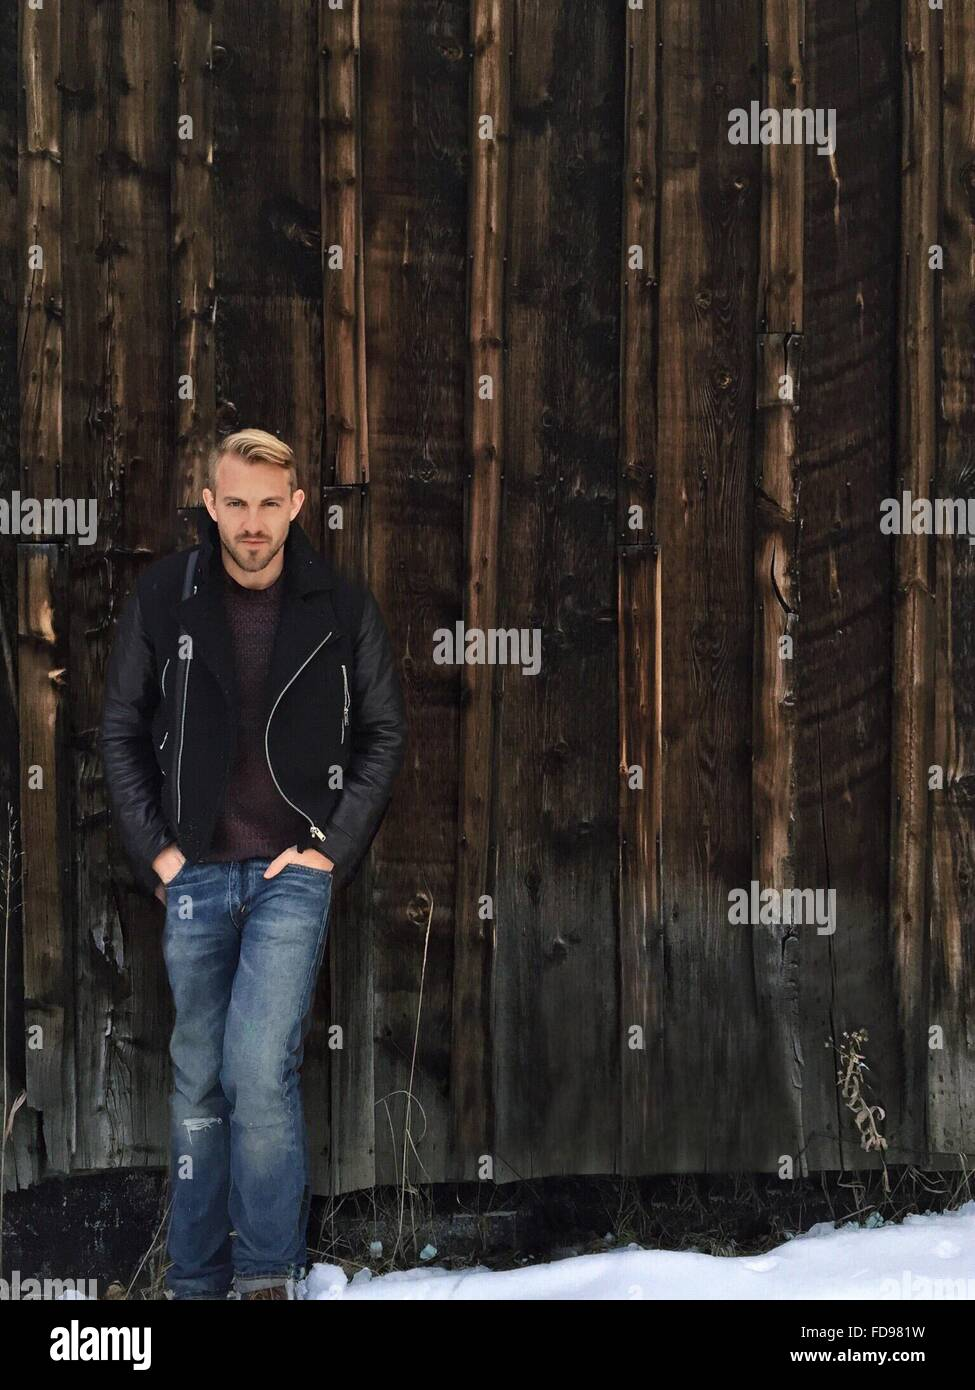 Full Length Portrait Of Young Man Standing On Snowy Landscape Against Wooden Wall - Stock Image